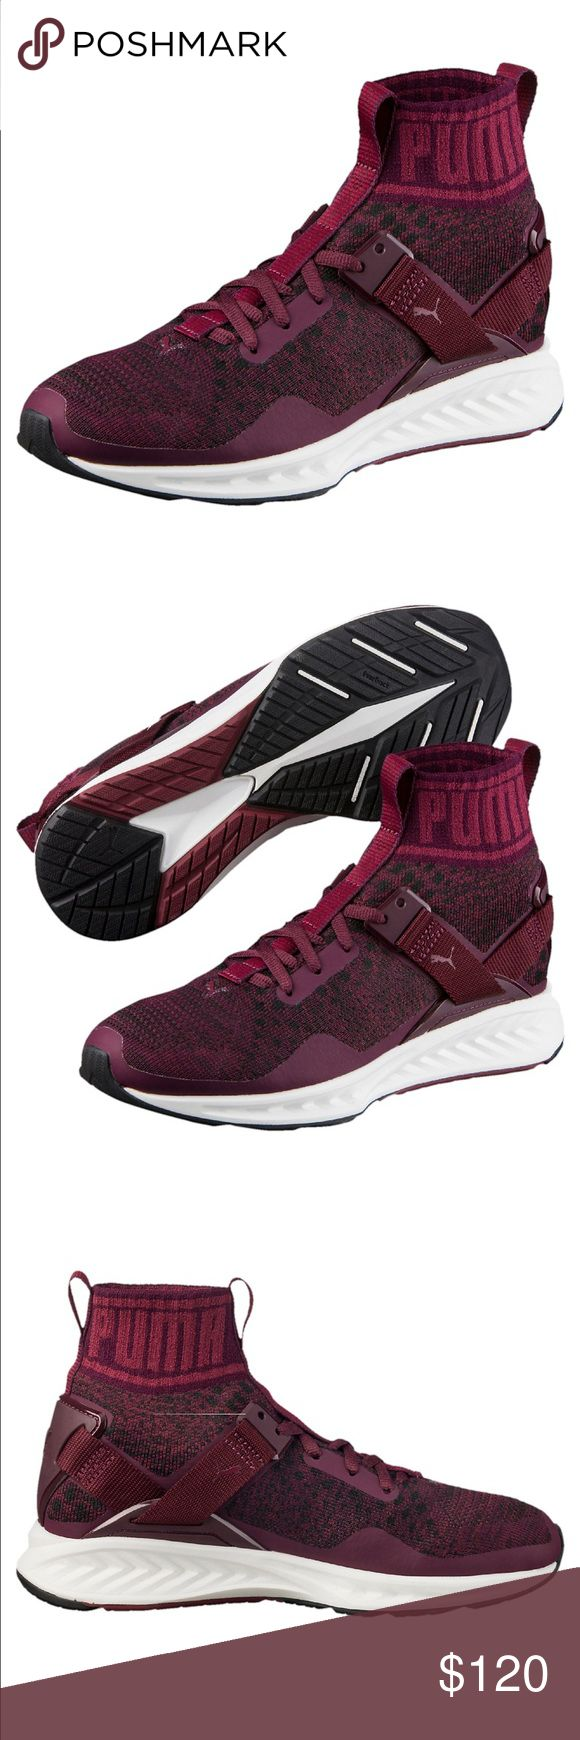 Puma Ignite Evoknit shoes were purchased from Puma website & are BRAND NEW and come with box!!! PERFECT condition. maroon, they run true to size, i'm selling because i got these as a gift (too big) and i bought ones in an 8.5! they're super comfy *will post pictures of actual shoes today when i get home* Puma Shoes Sneakers